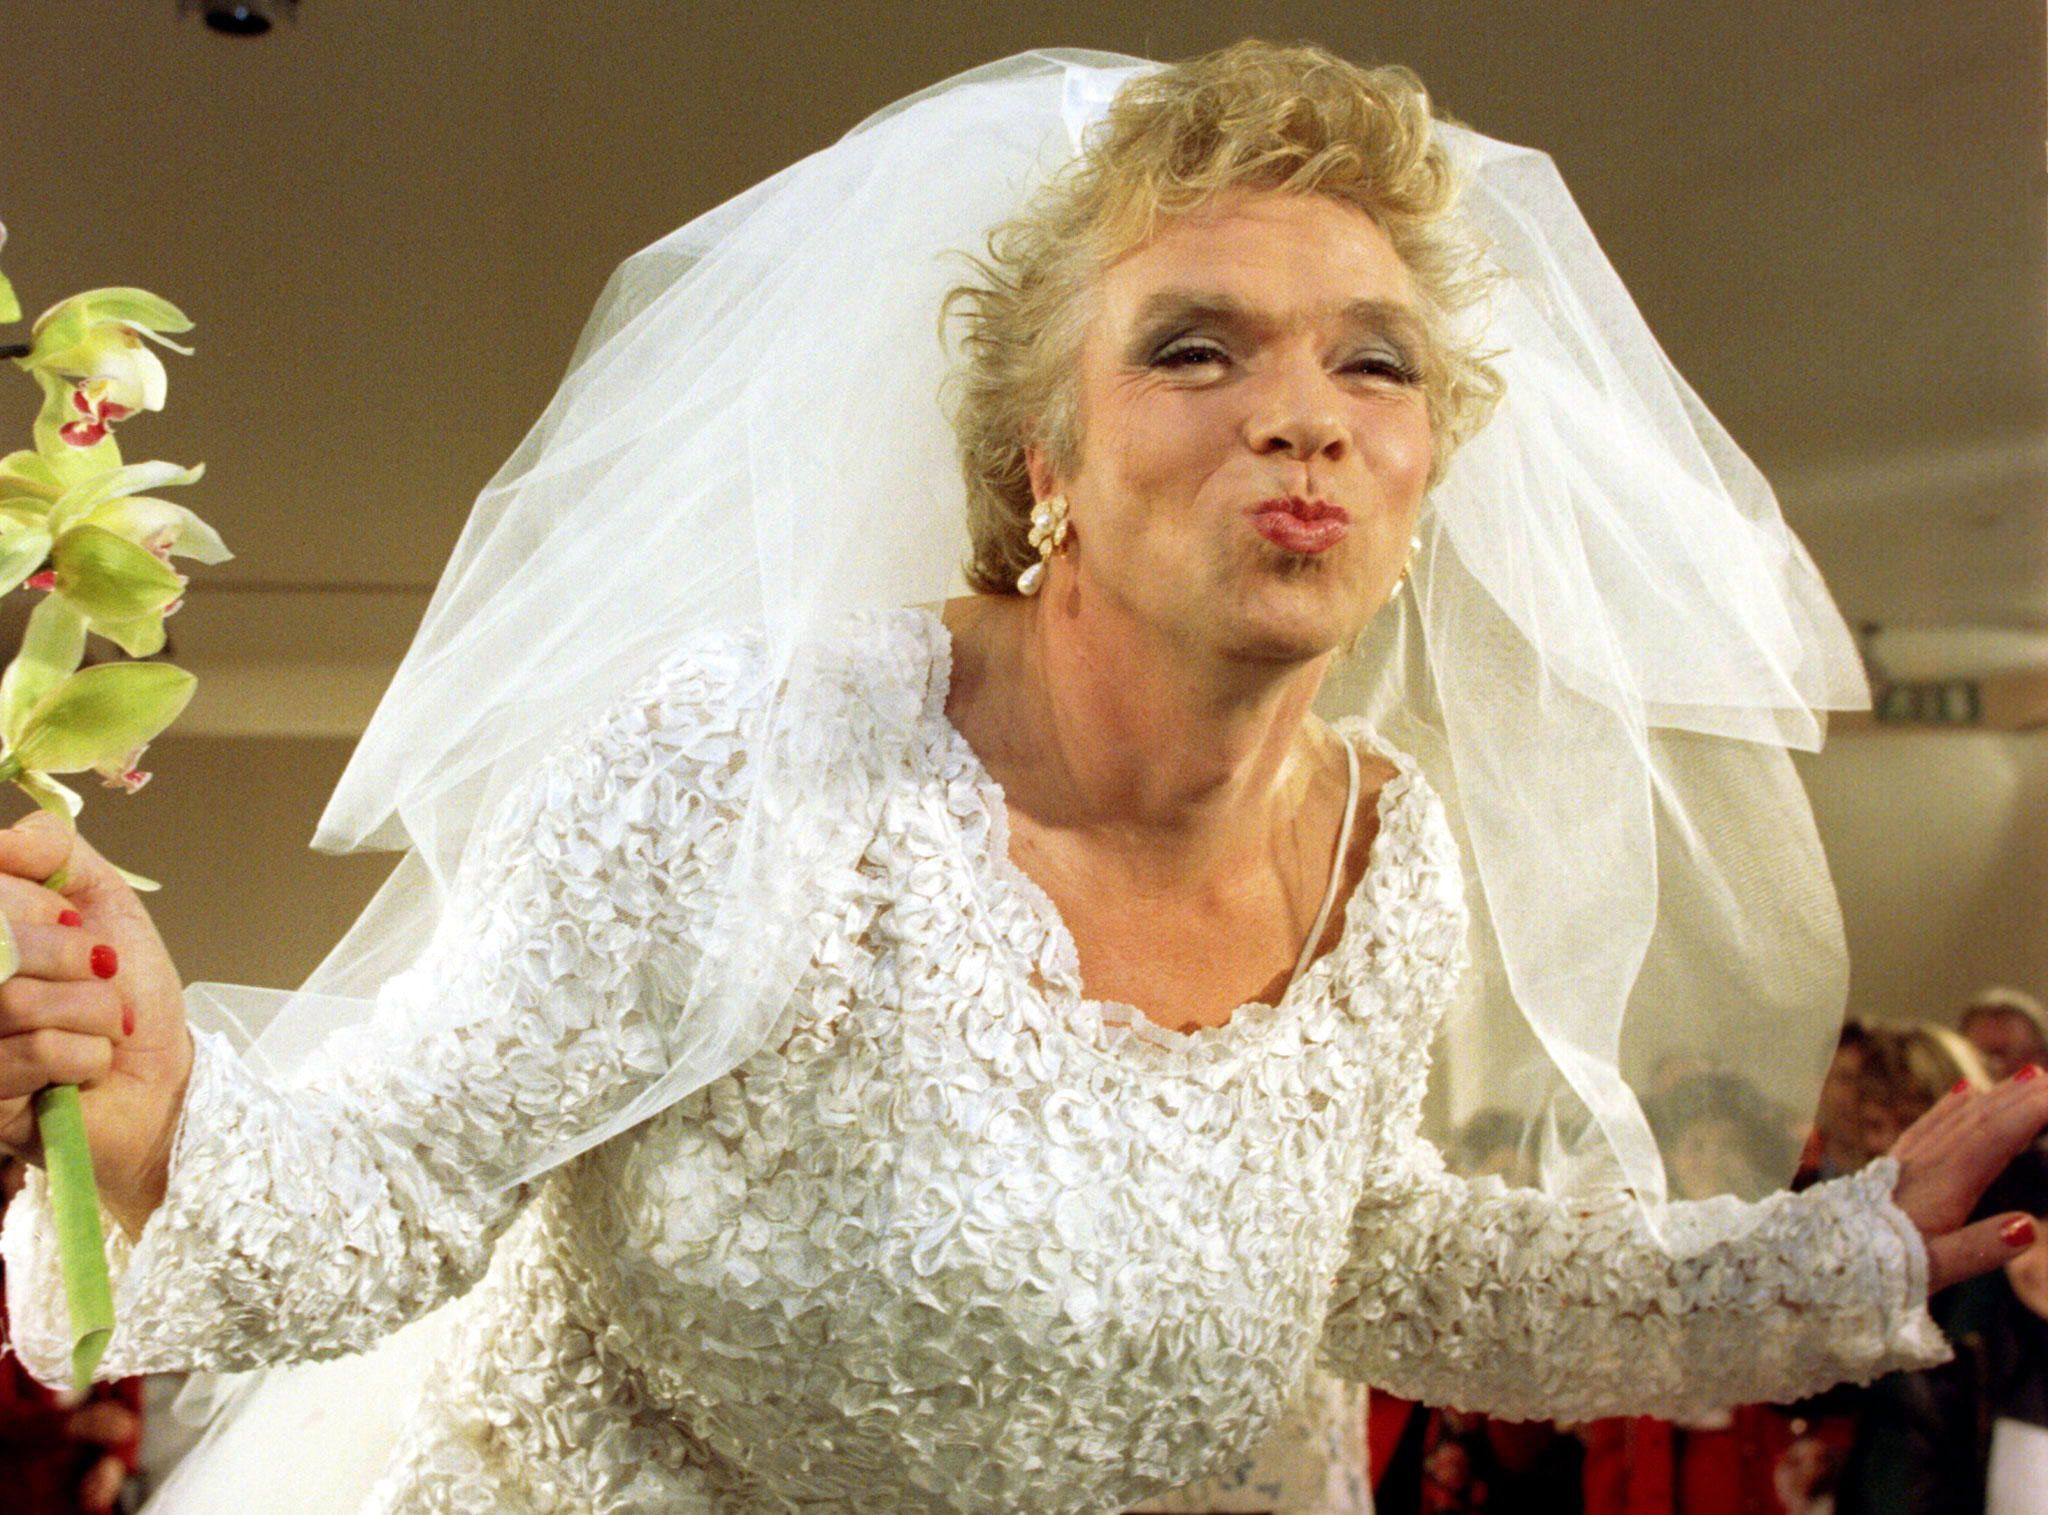 """Entrepreneur Richard Branson goes all out to promote his new business venture """"Virgin Bride"""" during its launch December 3. Branson, who shaved his beard for the big event, said his bridal retailing business will revolutionise the wedding industry in the UK."""